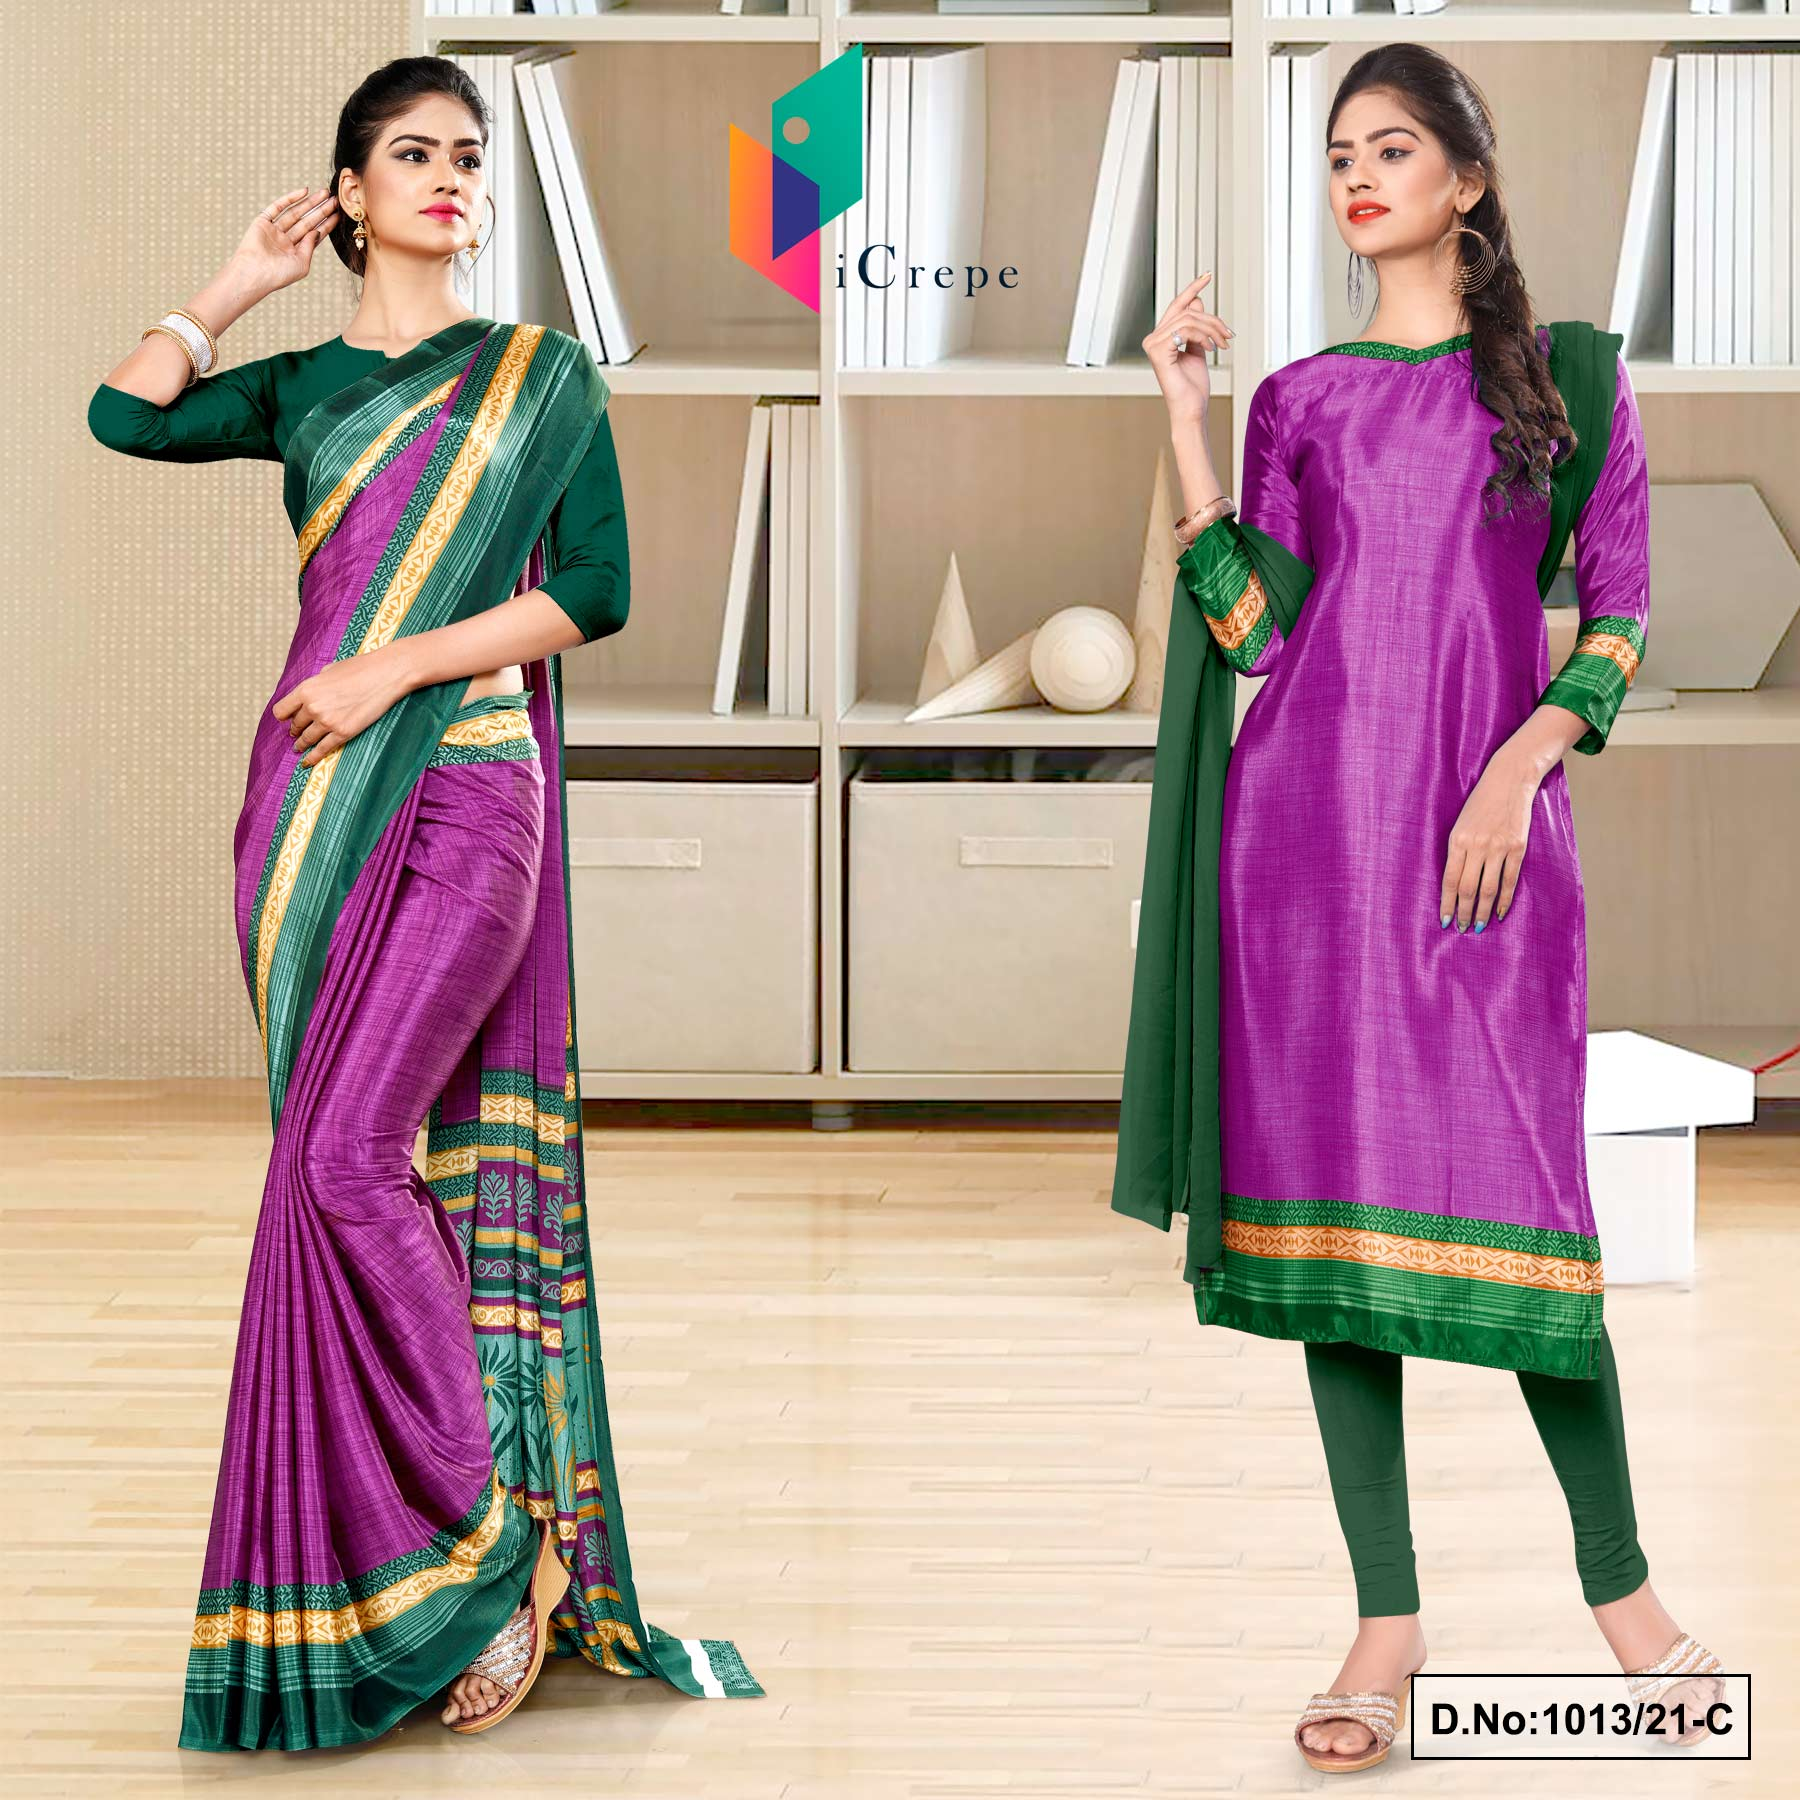 Wine Bottle Green Premium Italian Silk Crepe Saree Salwar Combo for Industrial Uniform Sarees